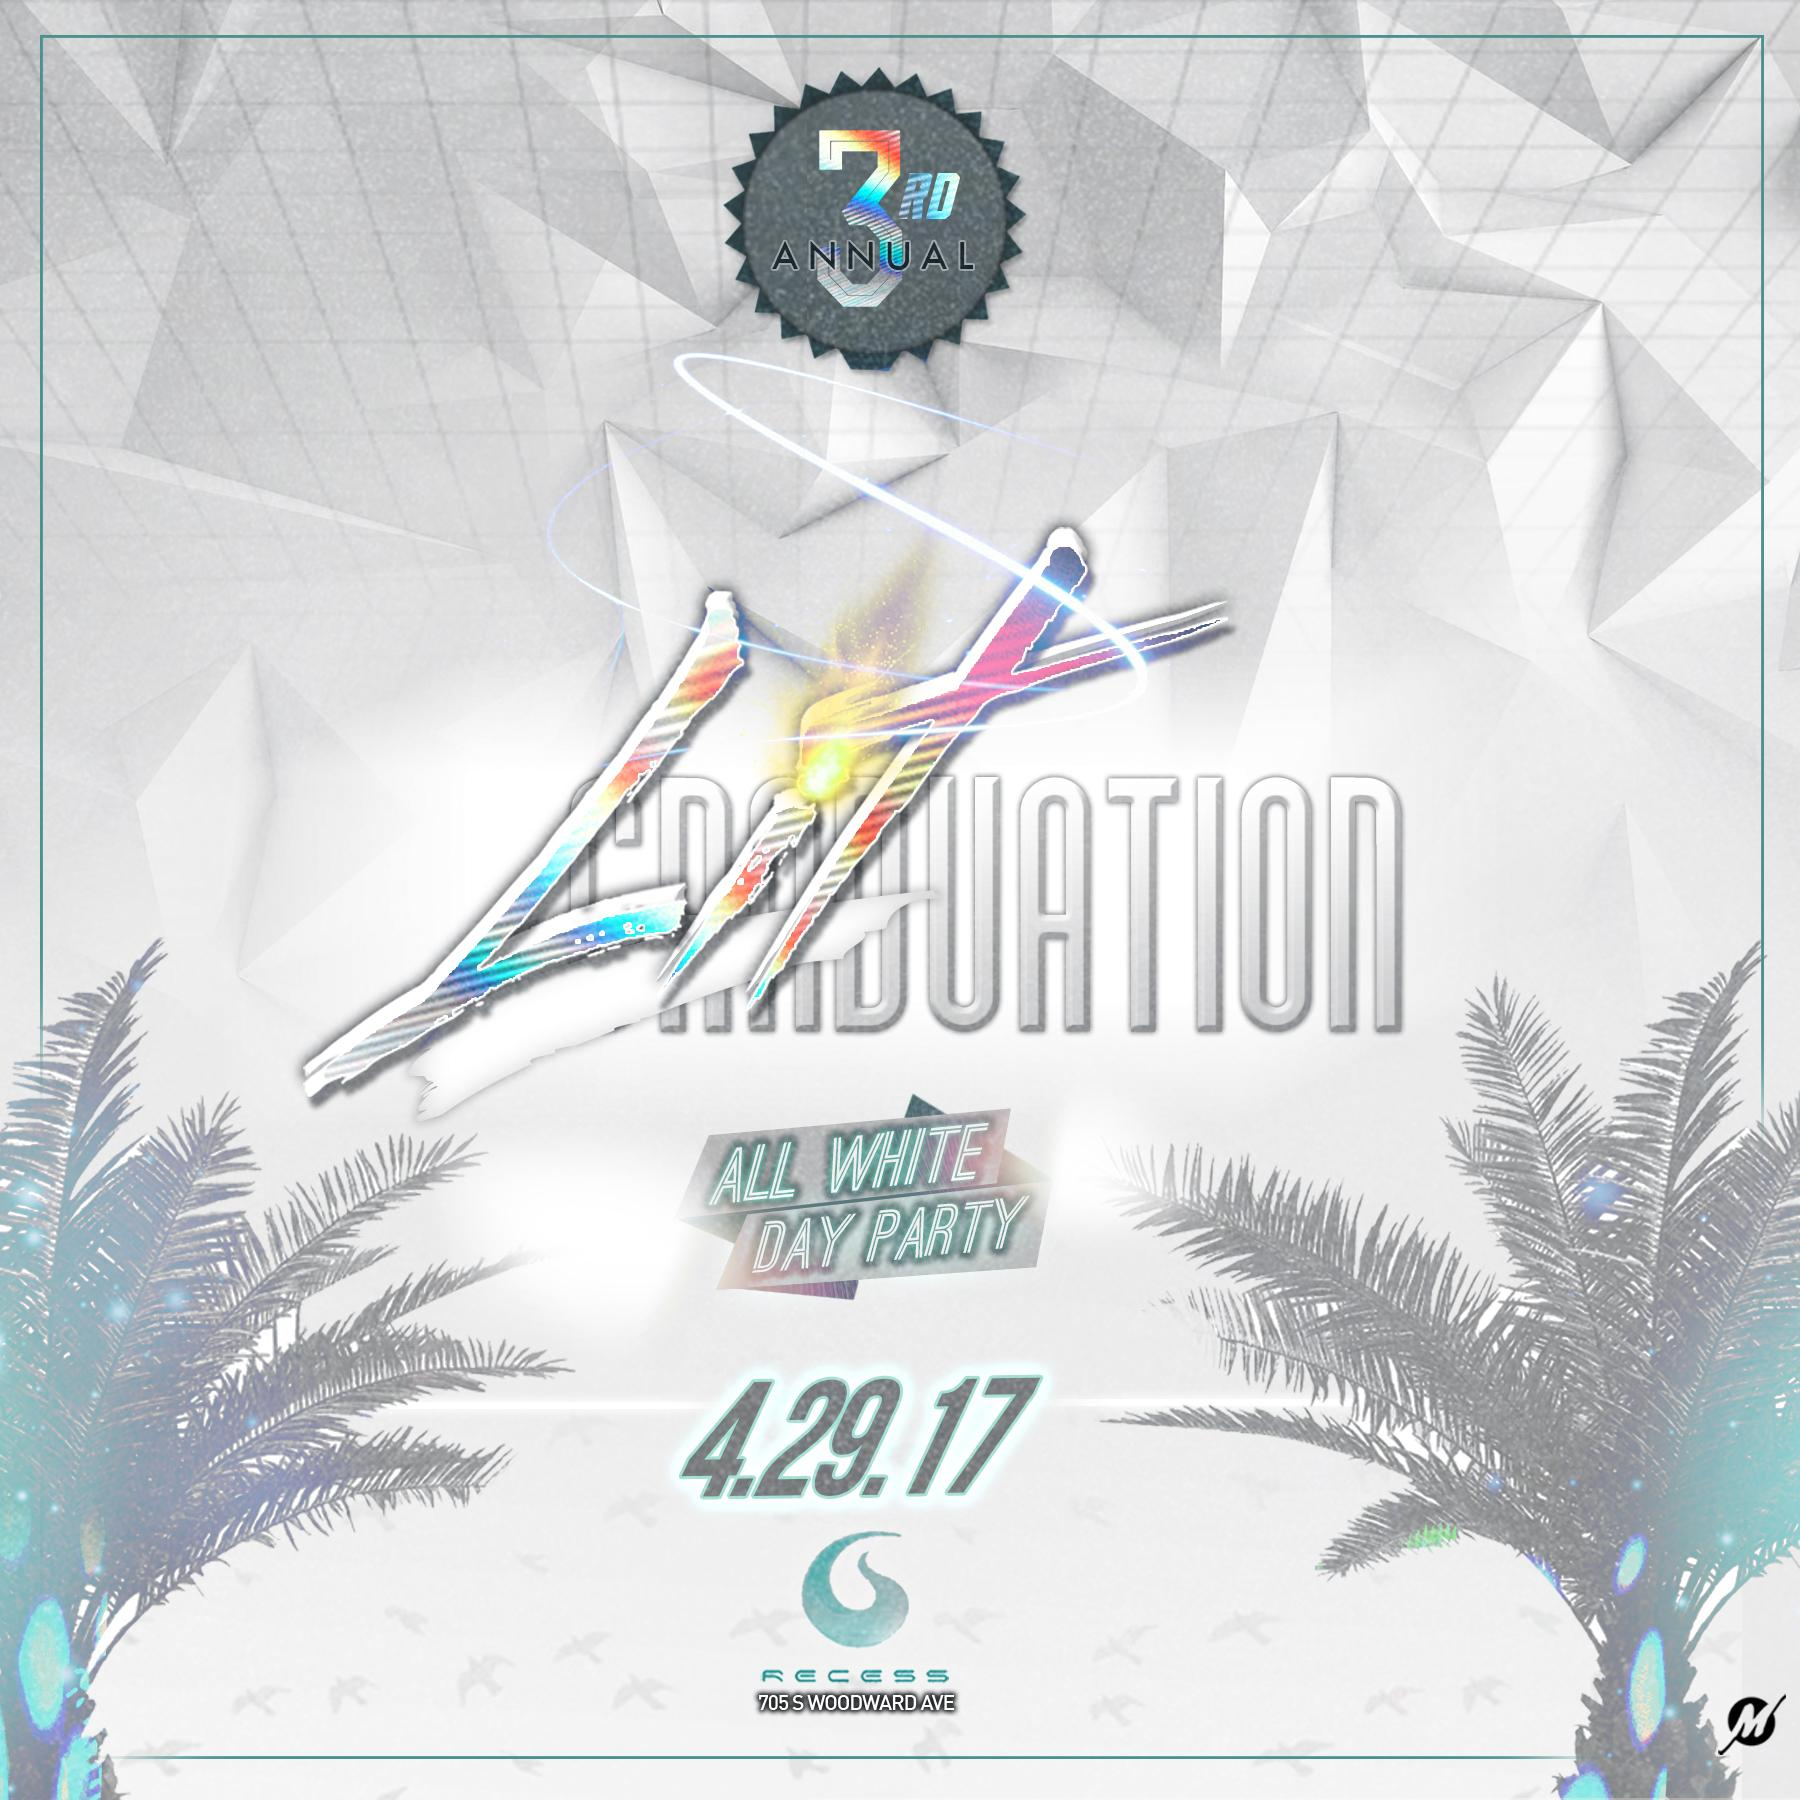 ALL WHITE Lituation Day Party Houston. ALL WHITE Lituation Day Party Houston